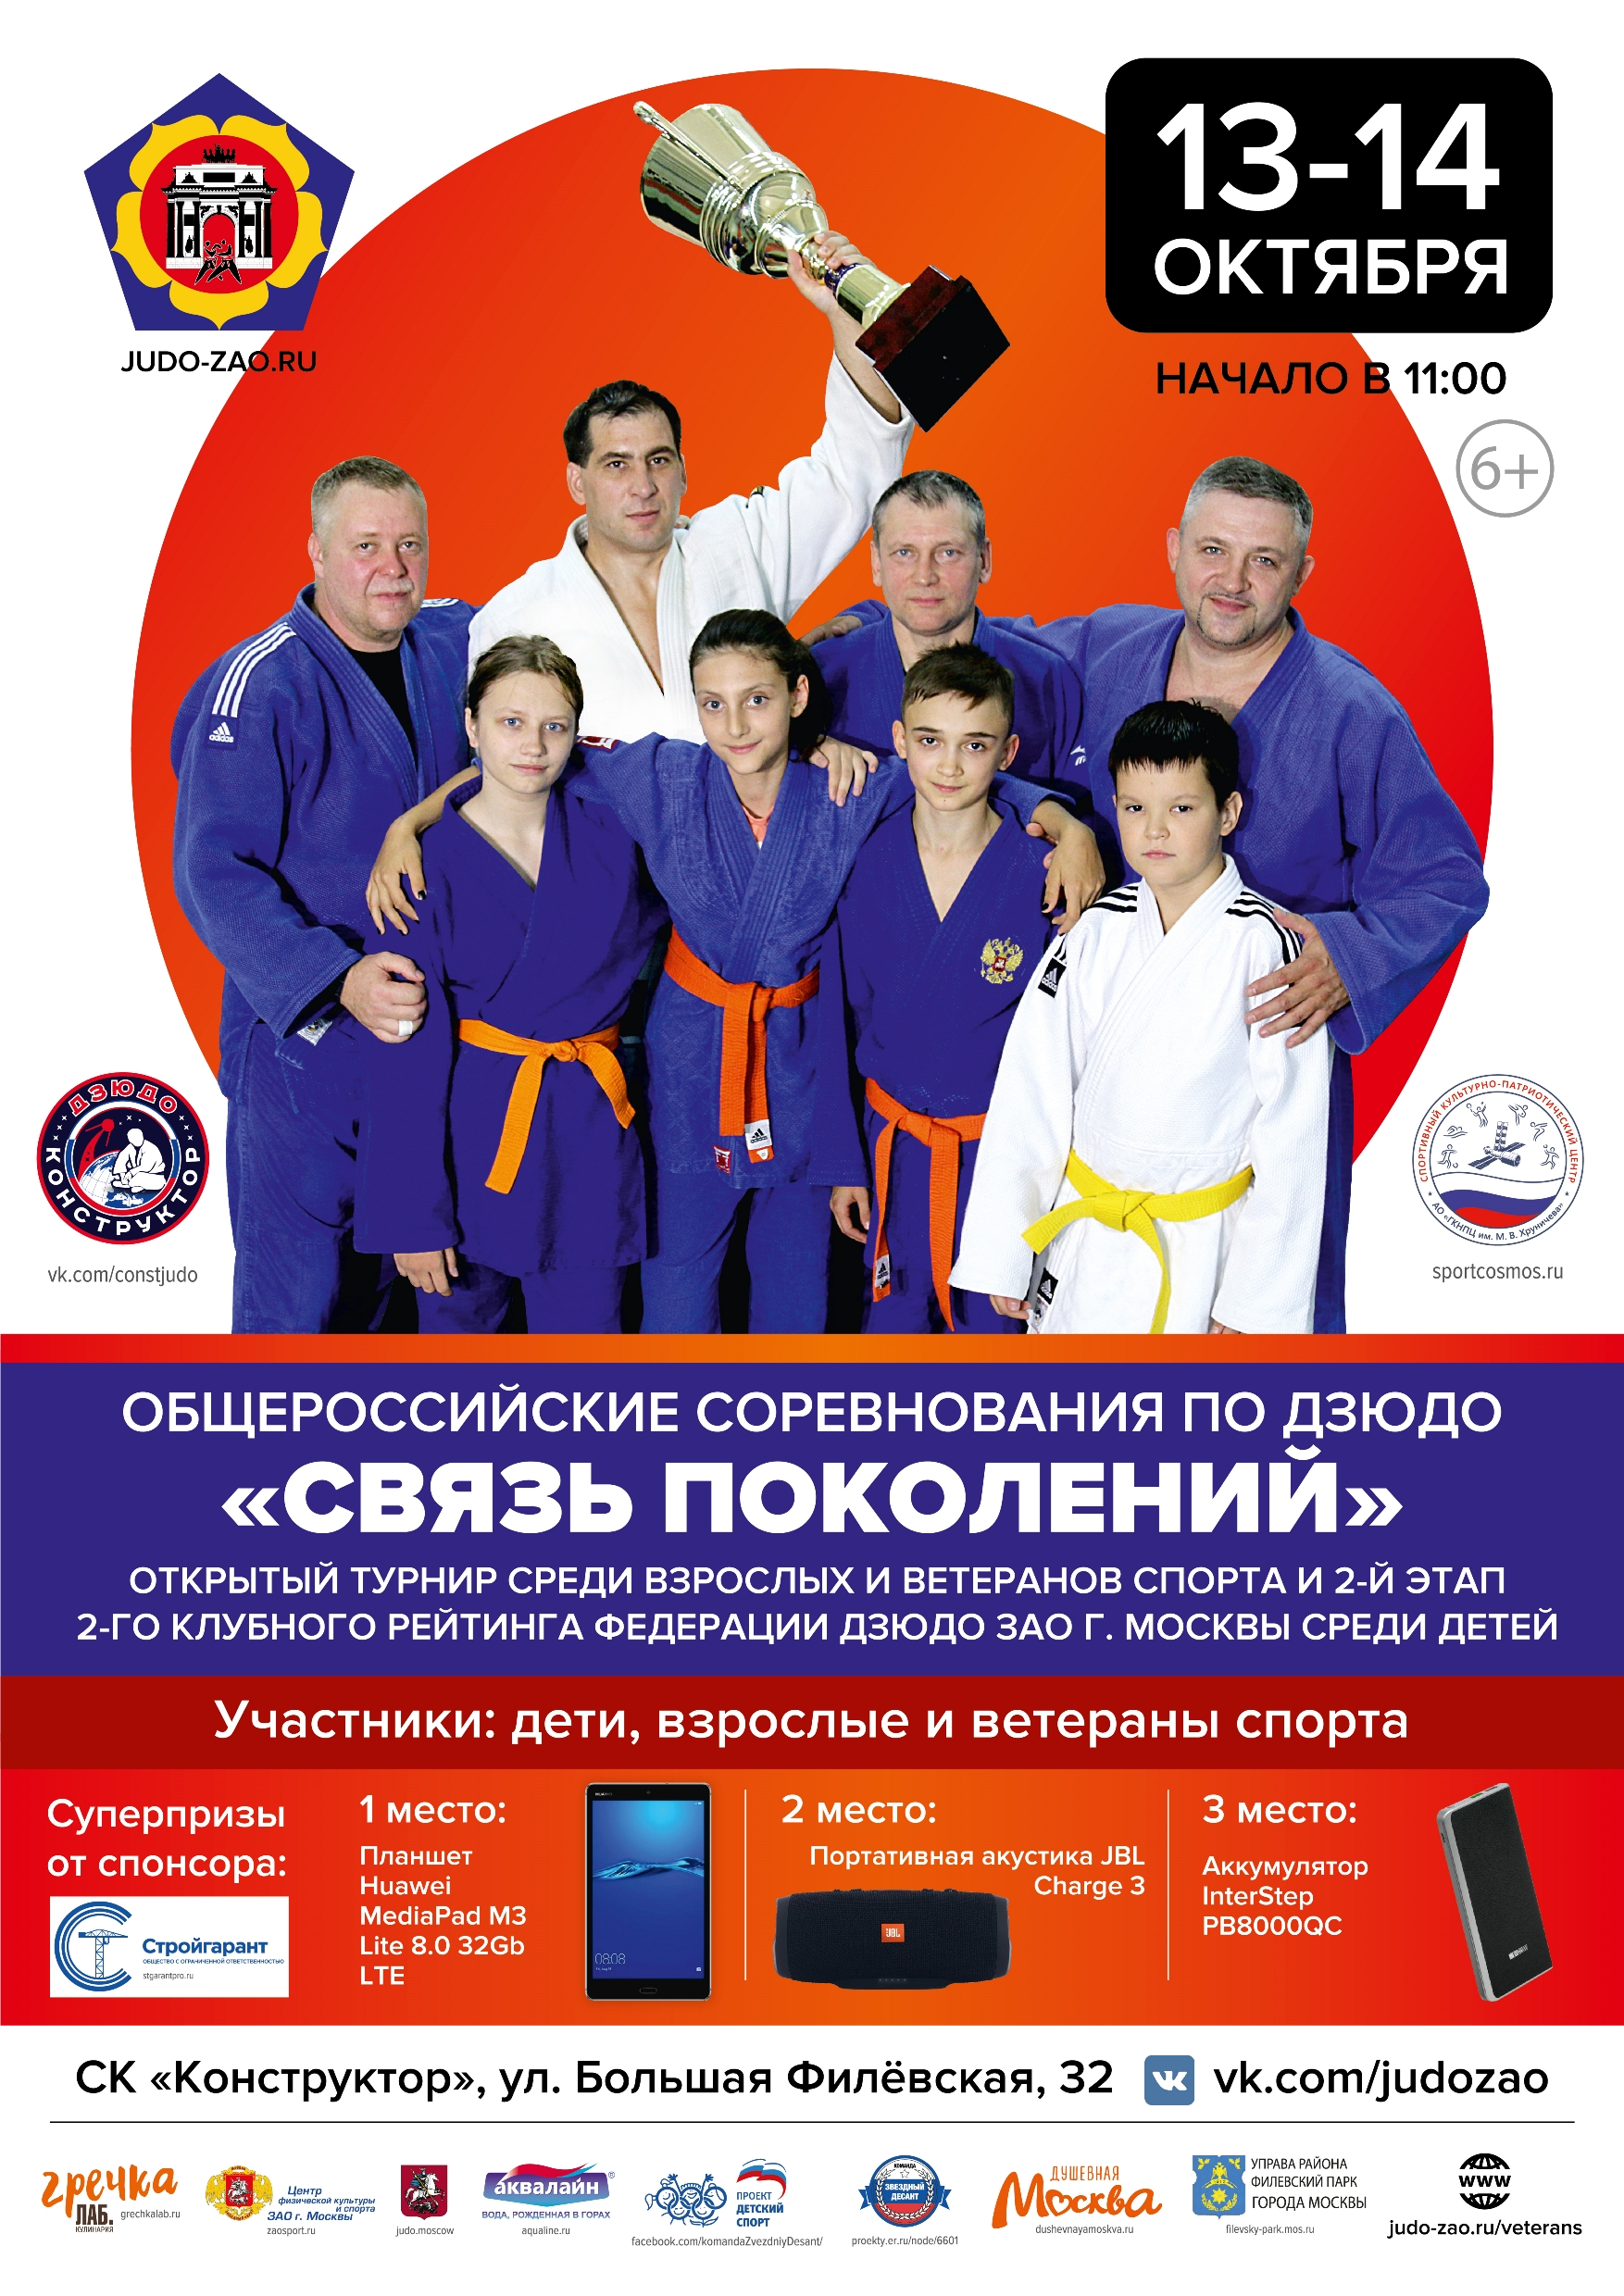 https://judo-zao.ru/clubrating/2/positions/2clubrating_2_poster.jpg